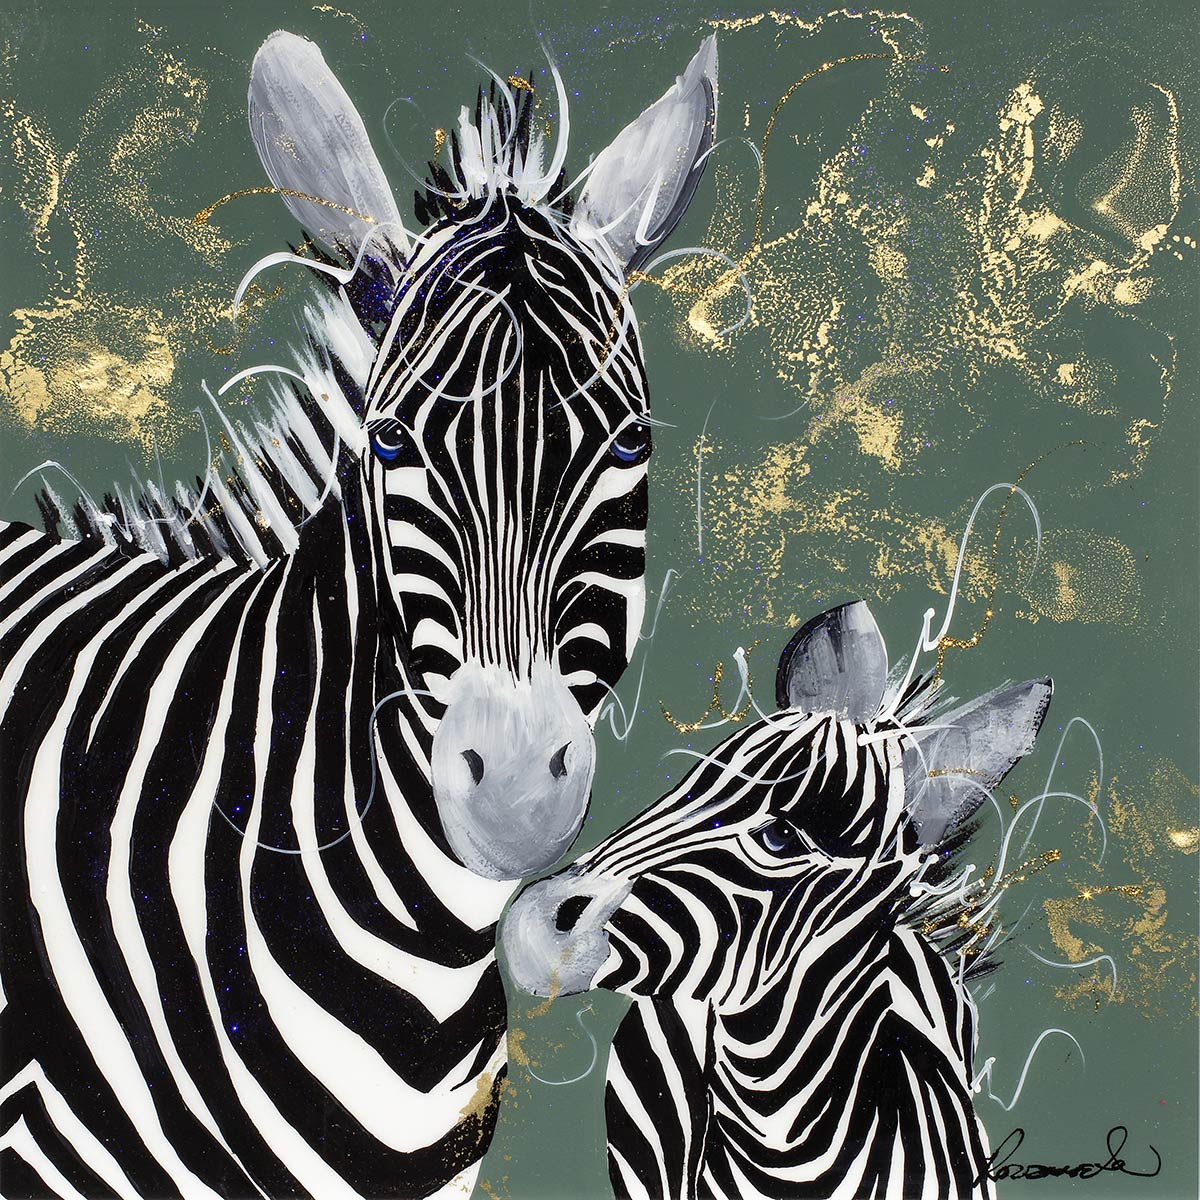 Striped Alike - Original - SOLD